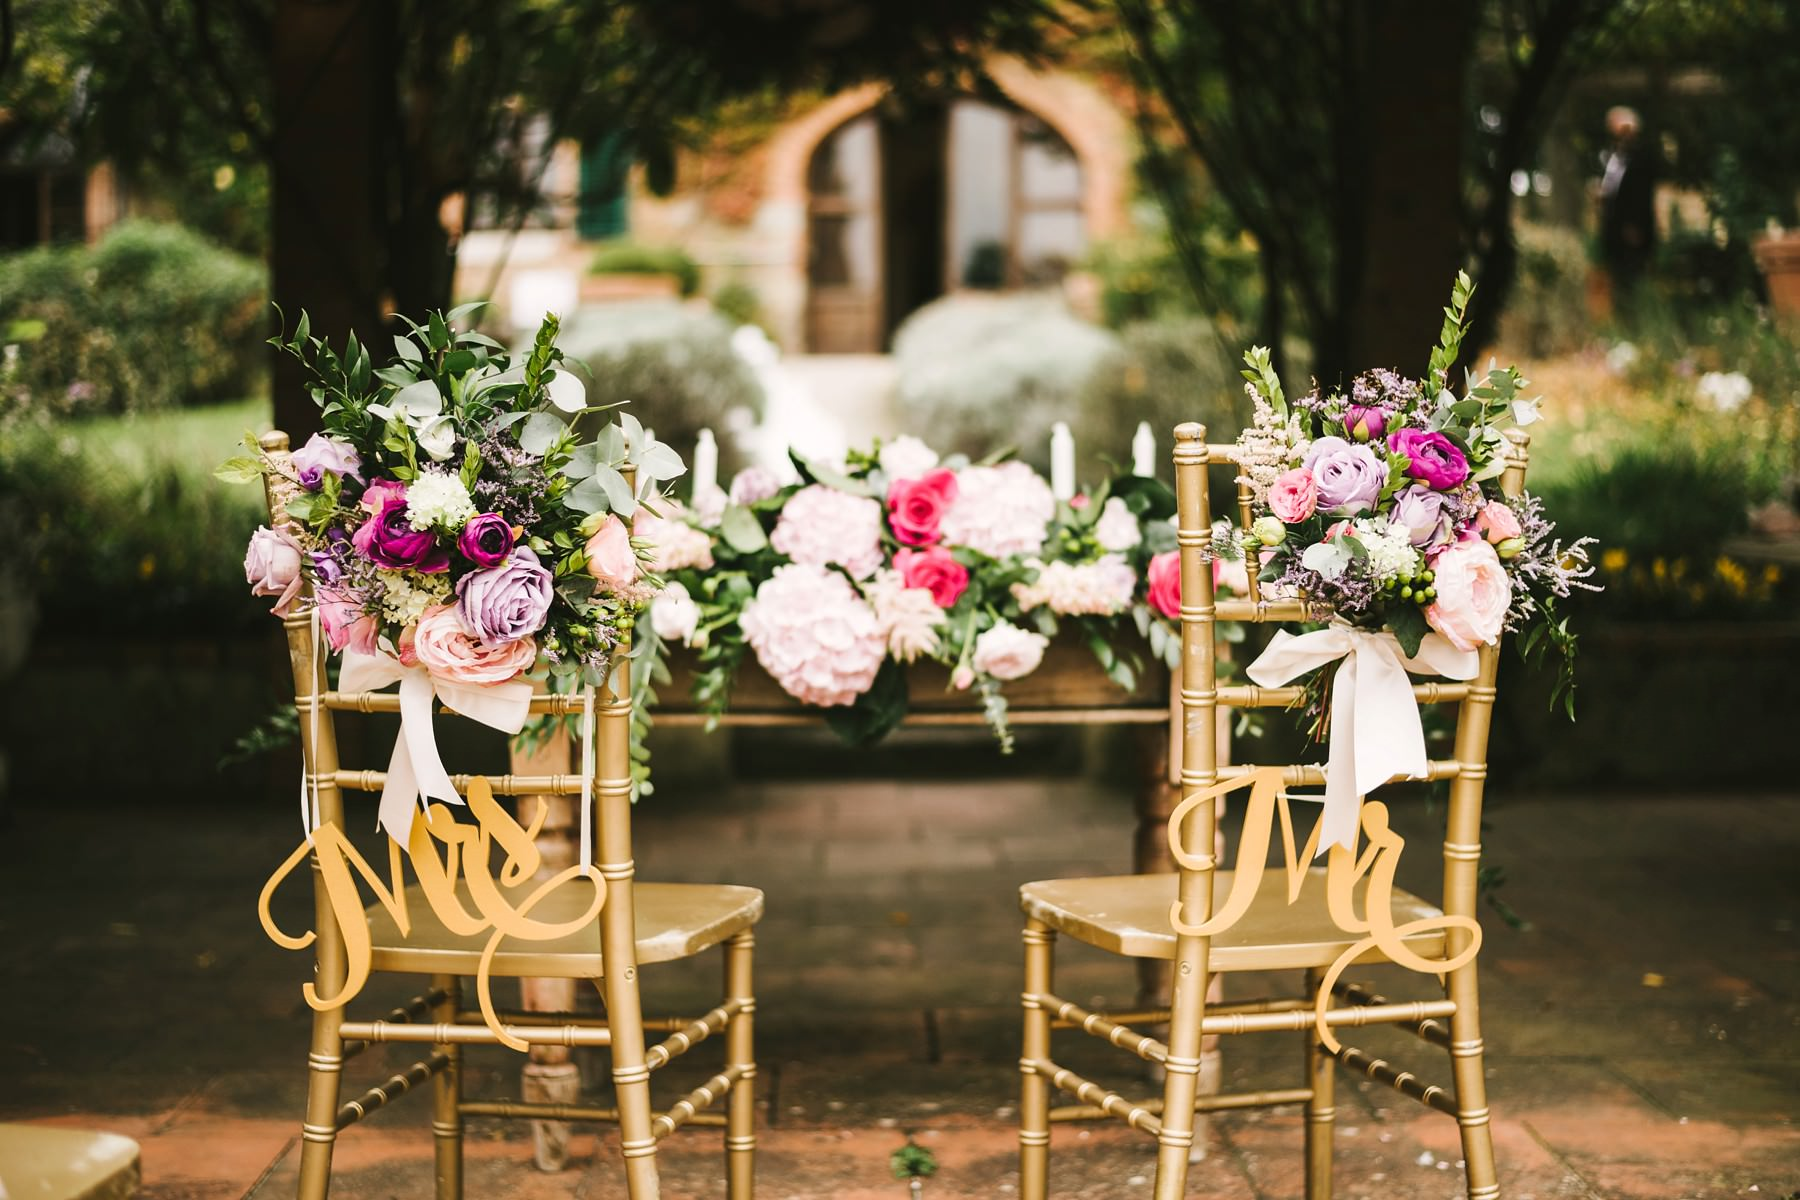 Charming and beautiful wedding ceremony decor in Tuscany farmhouse La Fornace